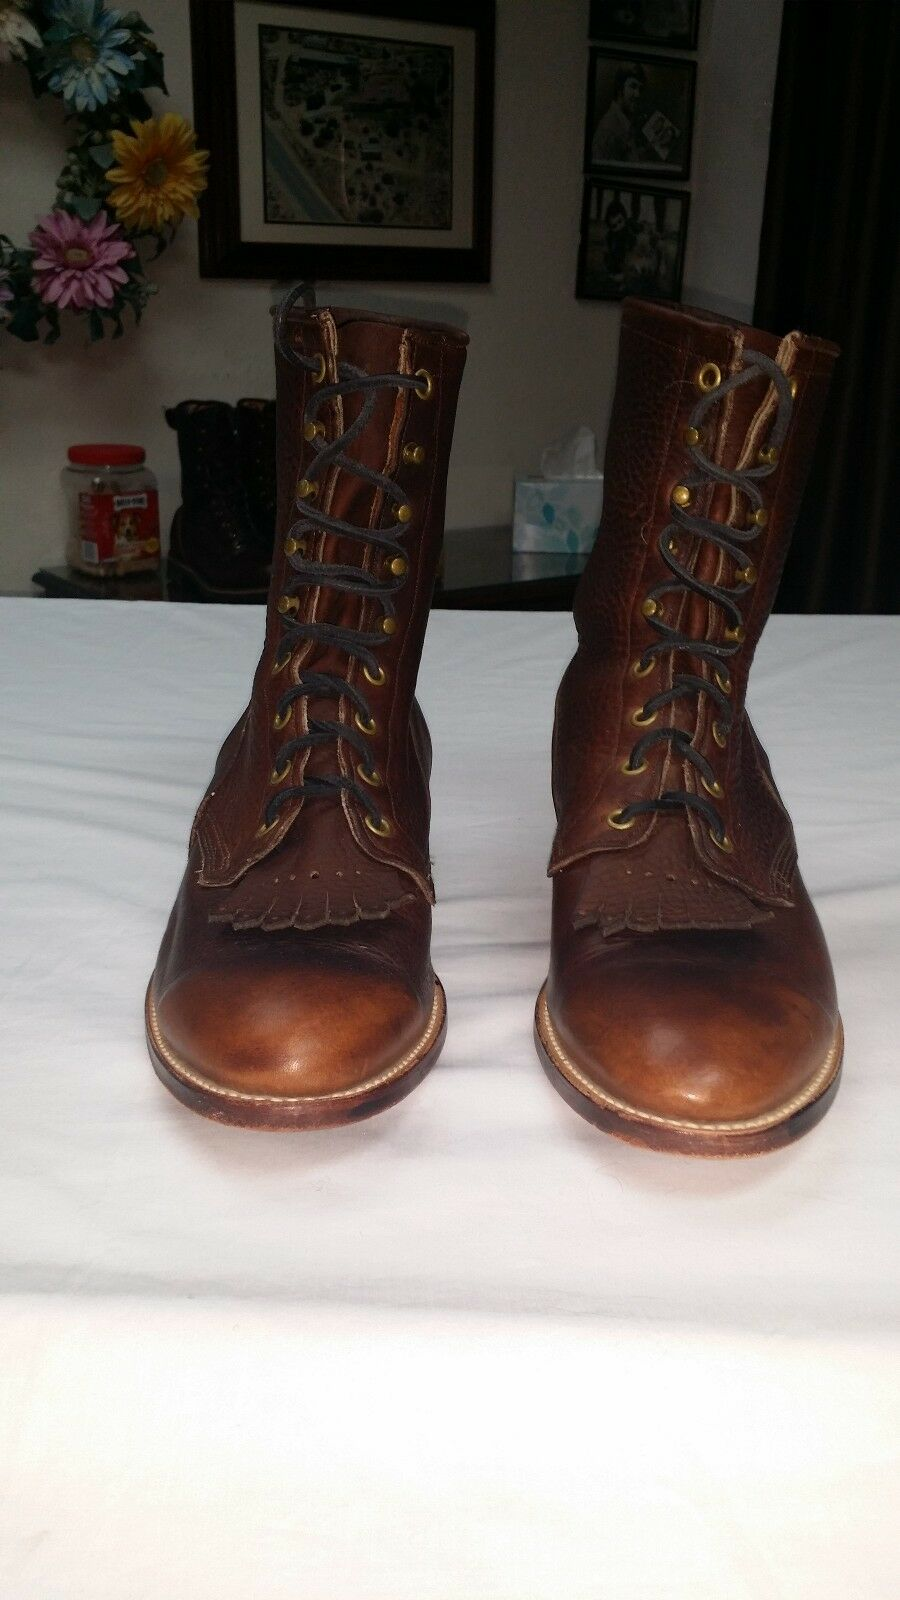 LARRY MAHEM  WESTERN  LACE UP BOOTS WITH SPUR SHELF  STYLE 4245 MADE IN USA